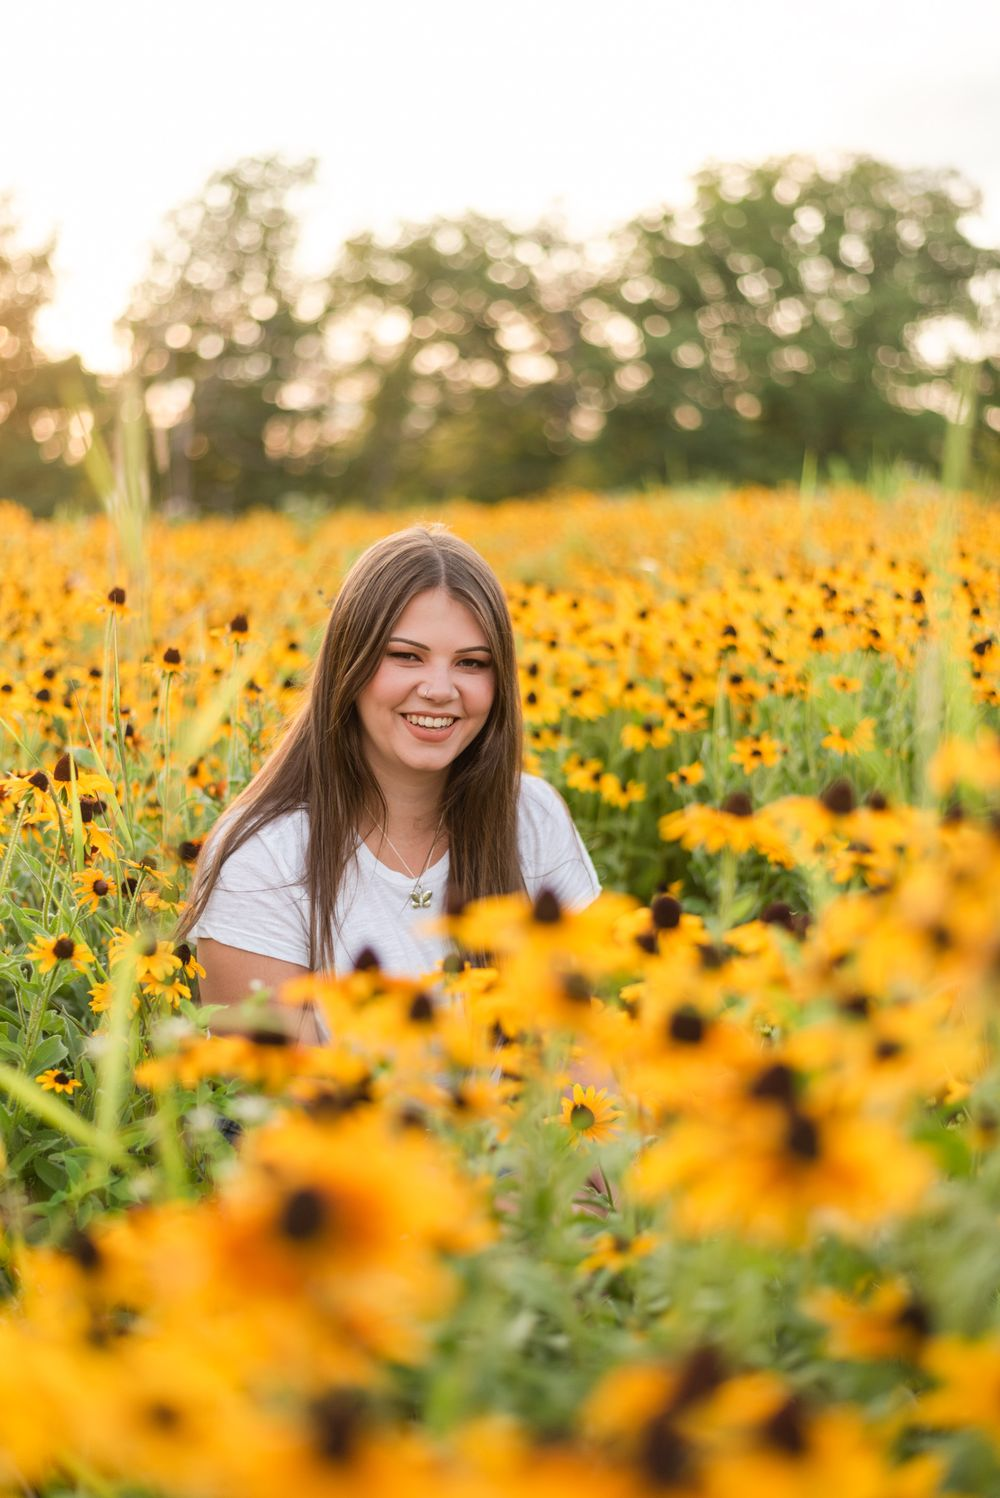 Senior sitting in flower patch in golden sunlight at Hartwood Acres in Pittsburgh Pennsylvania